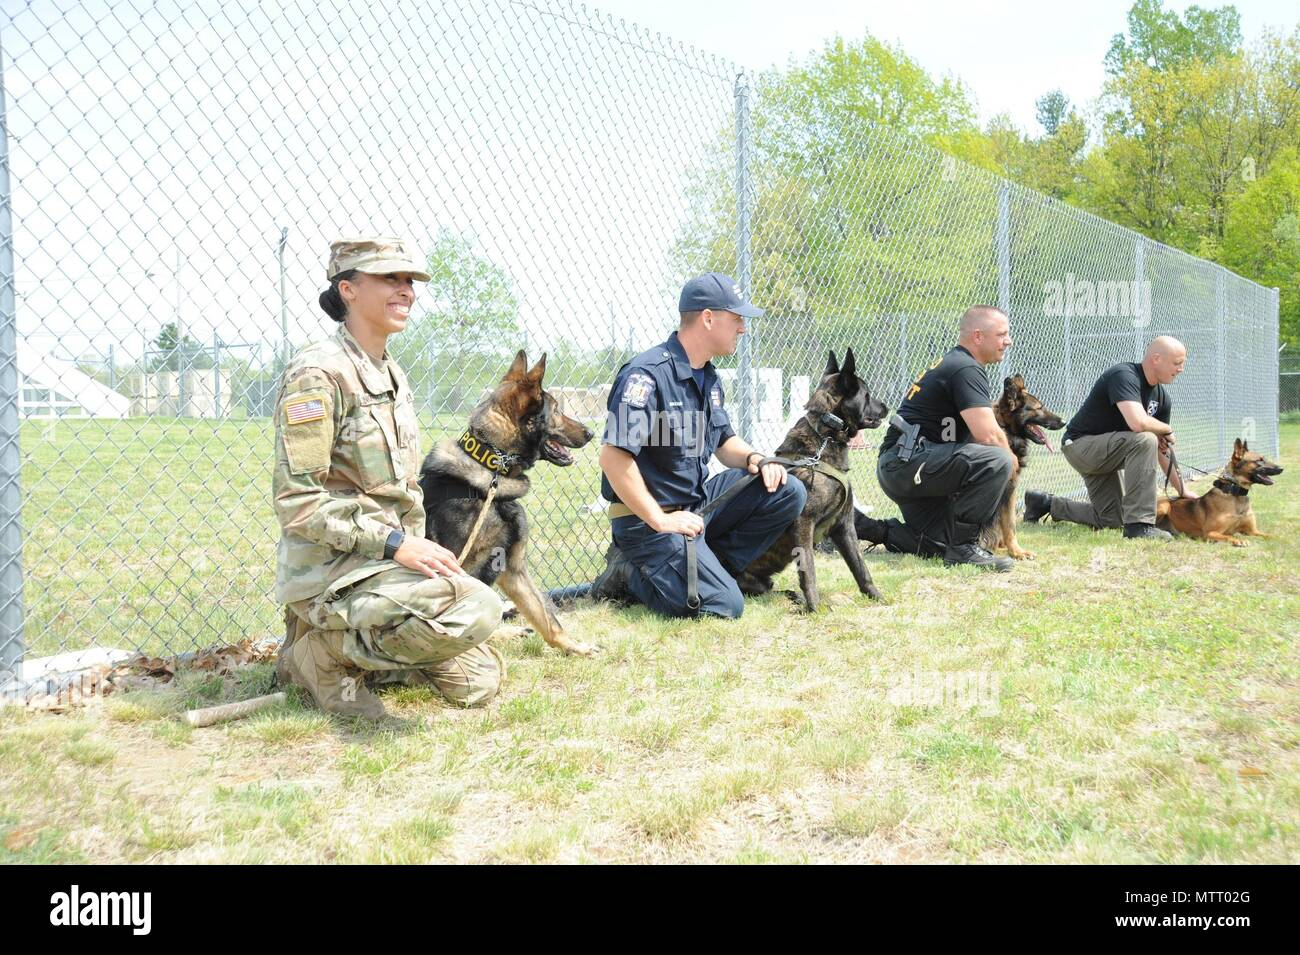 Hosted by the 8th Military Working Dog Detachment, 91st Military